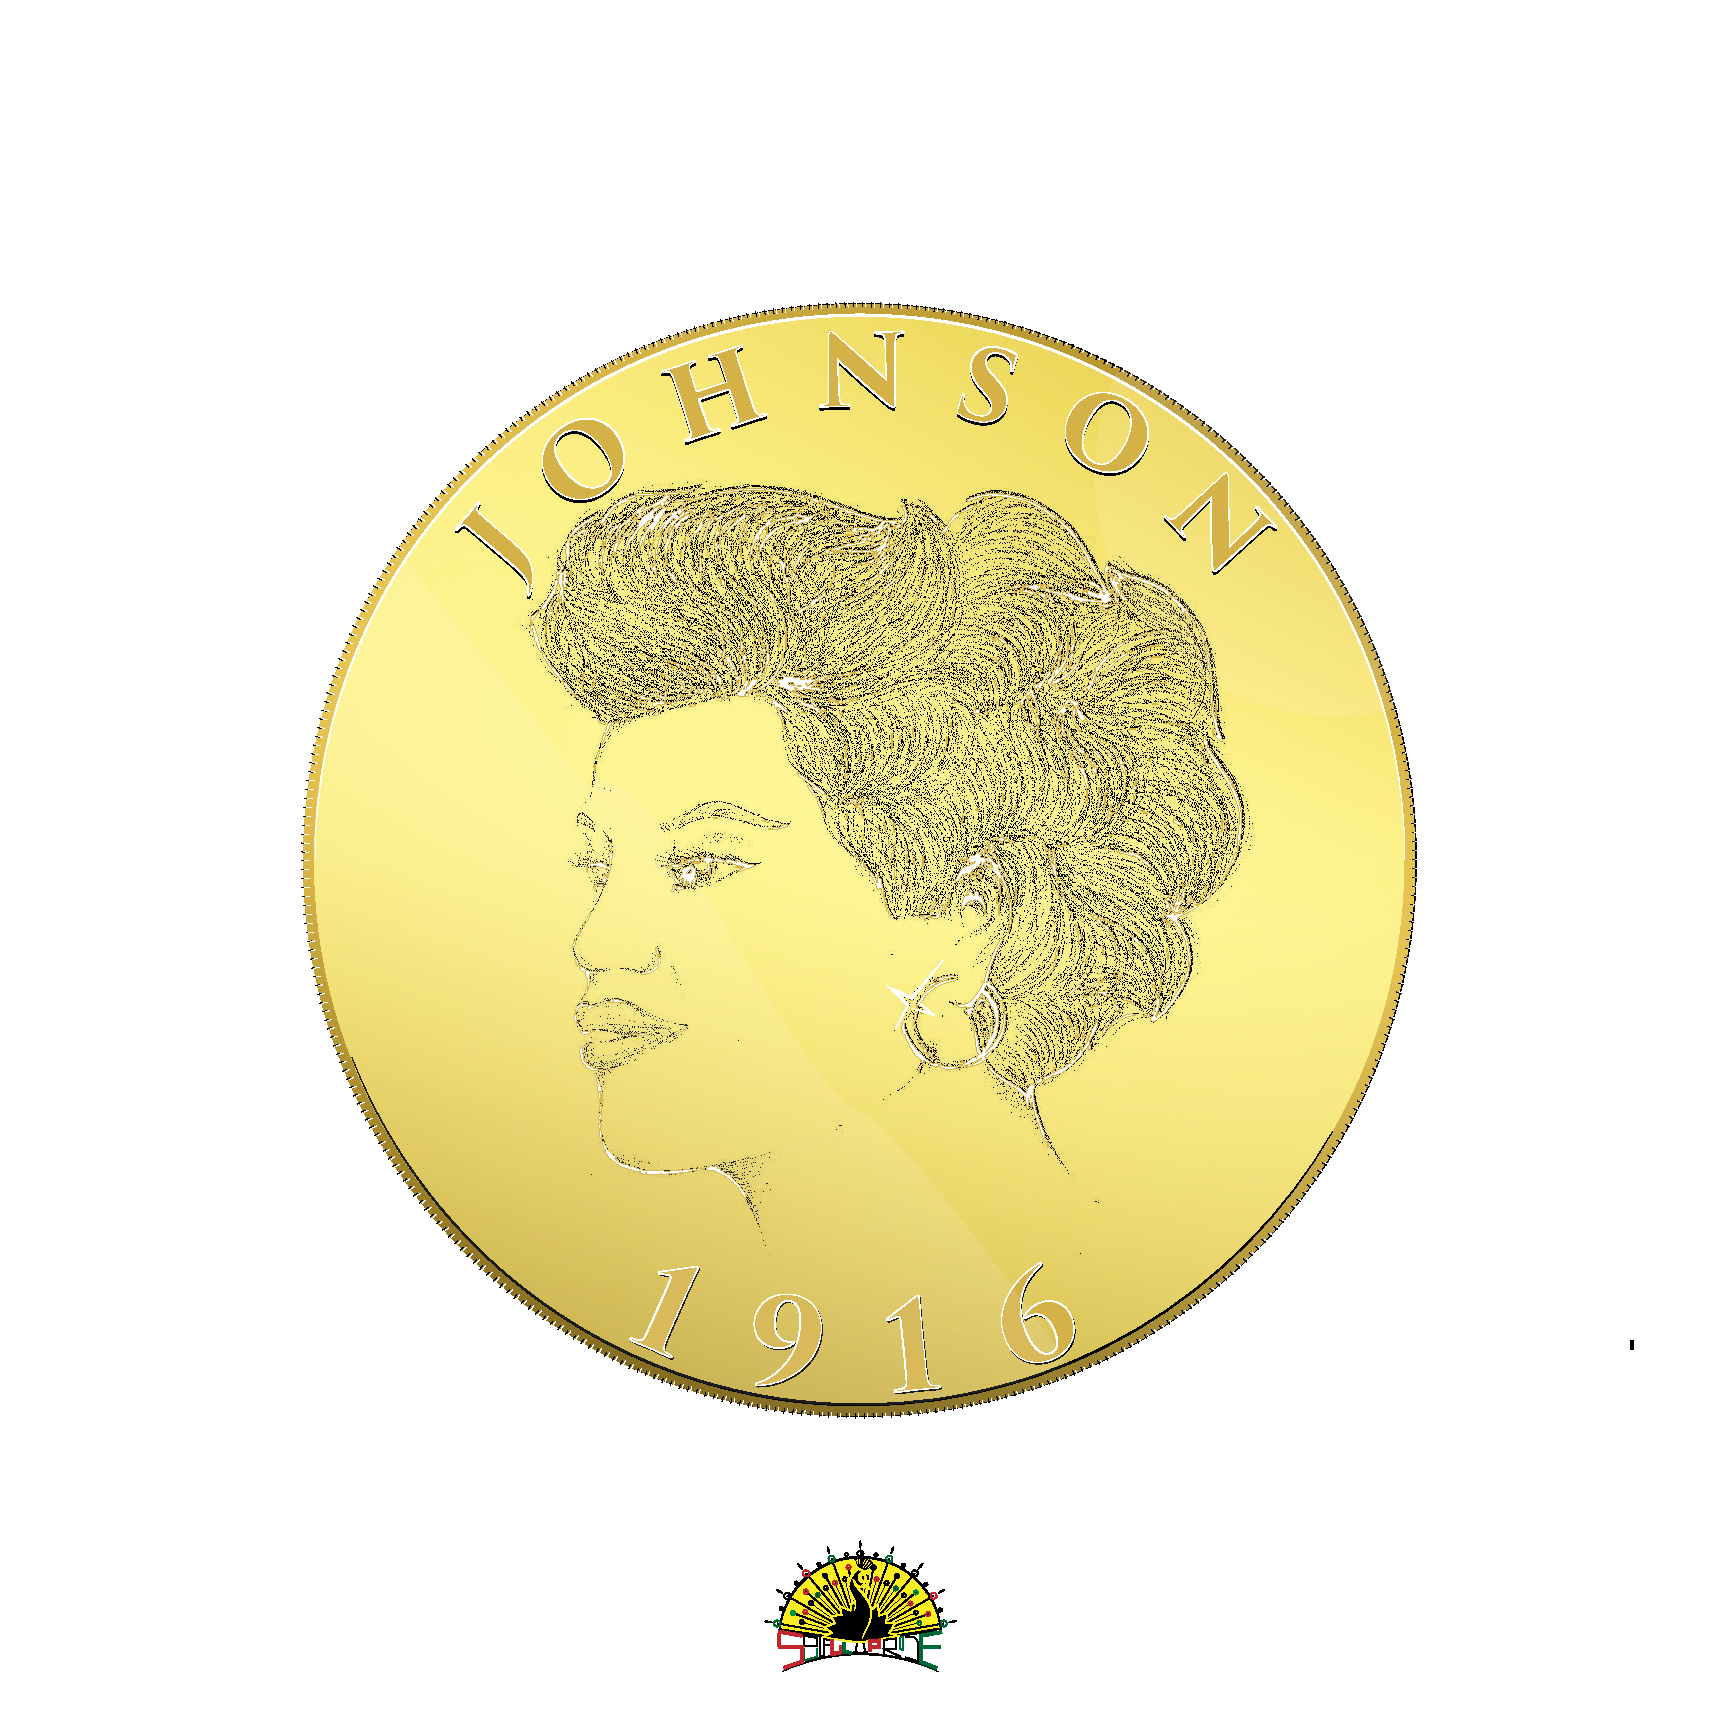 eunicejohnsongold.png